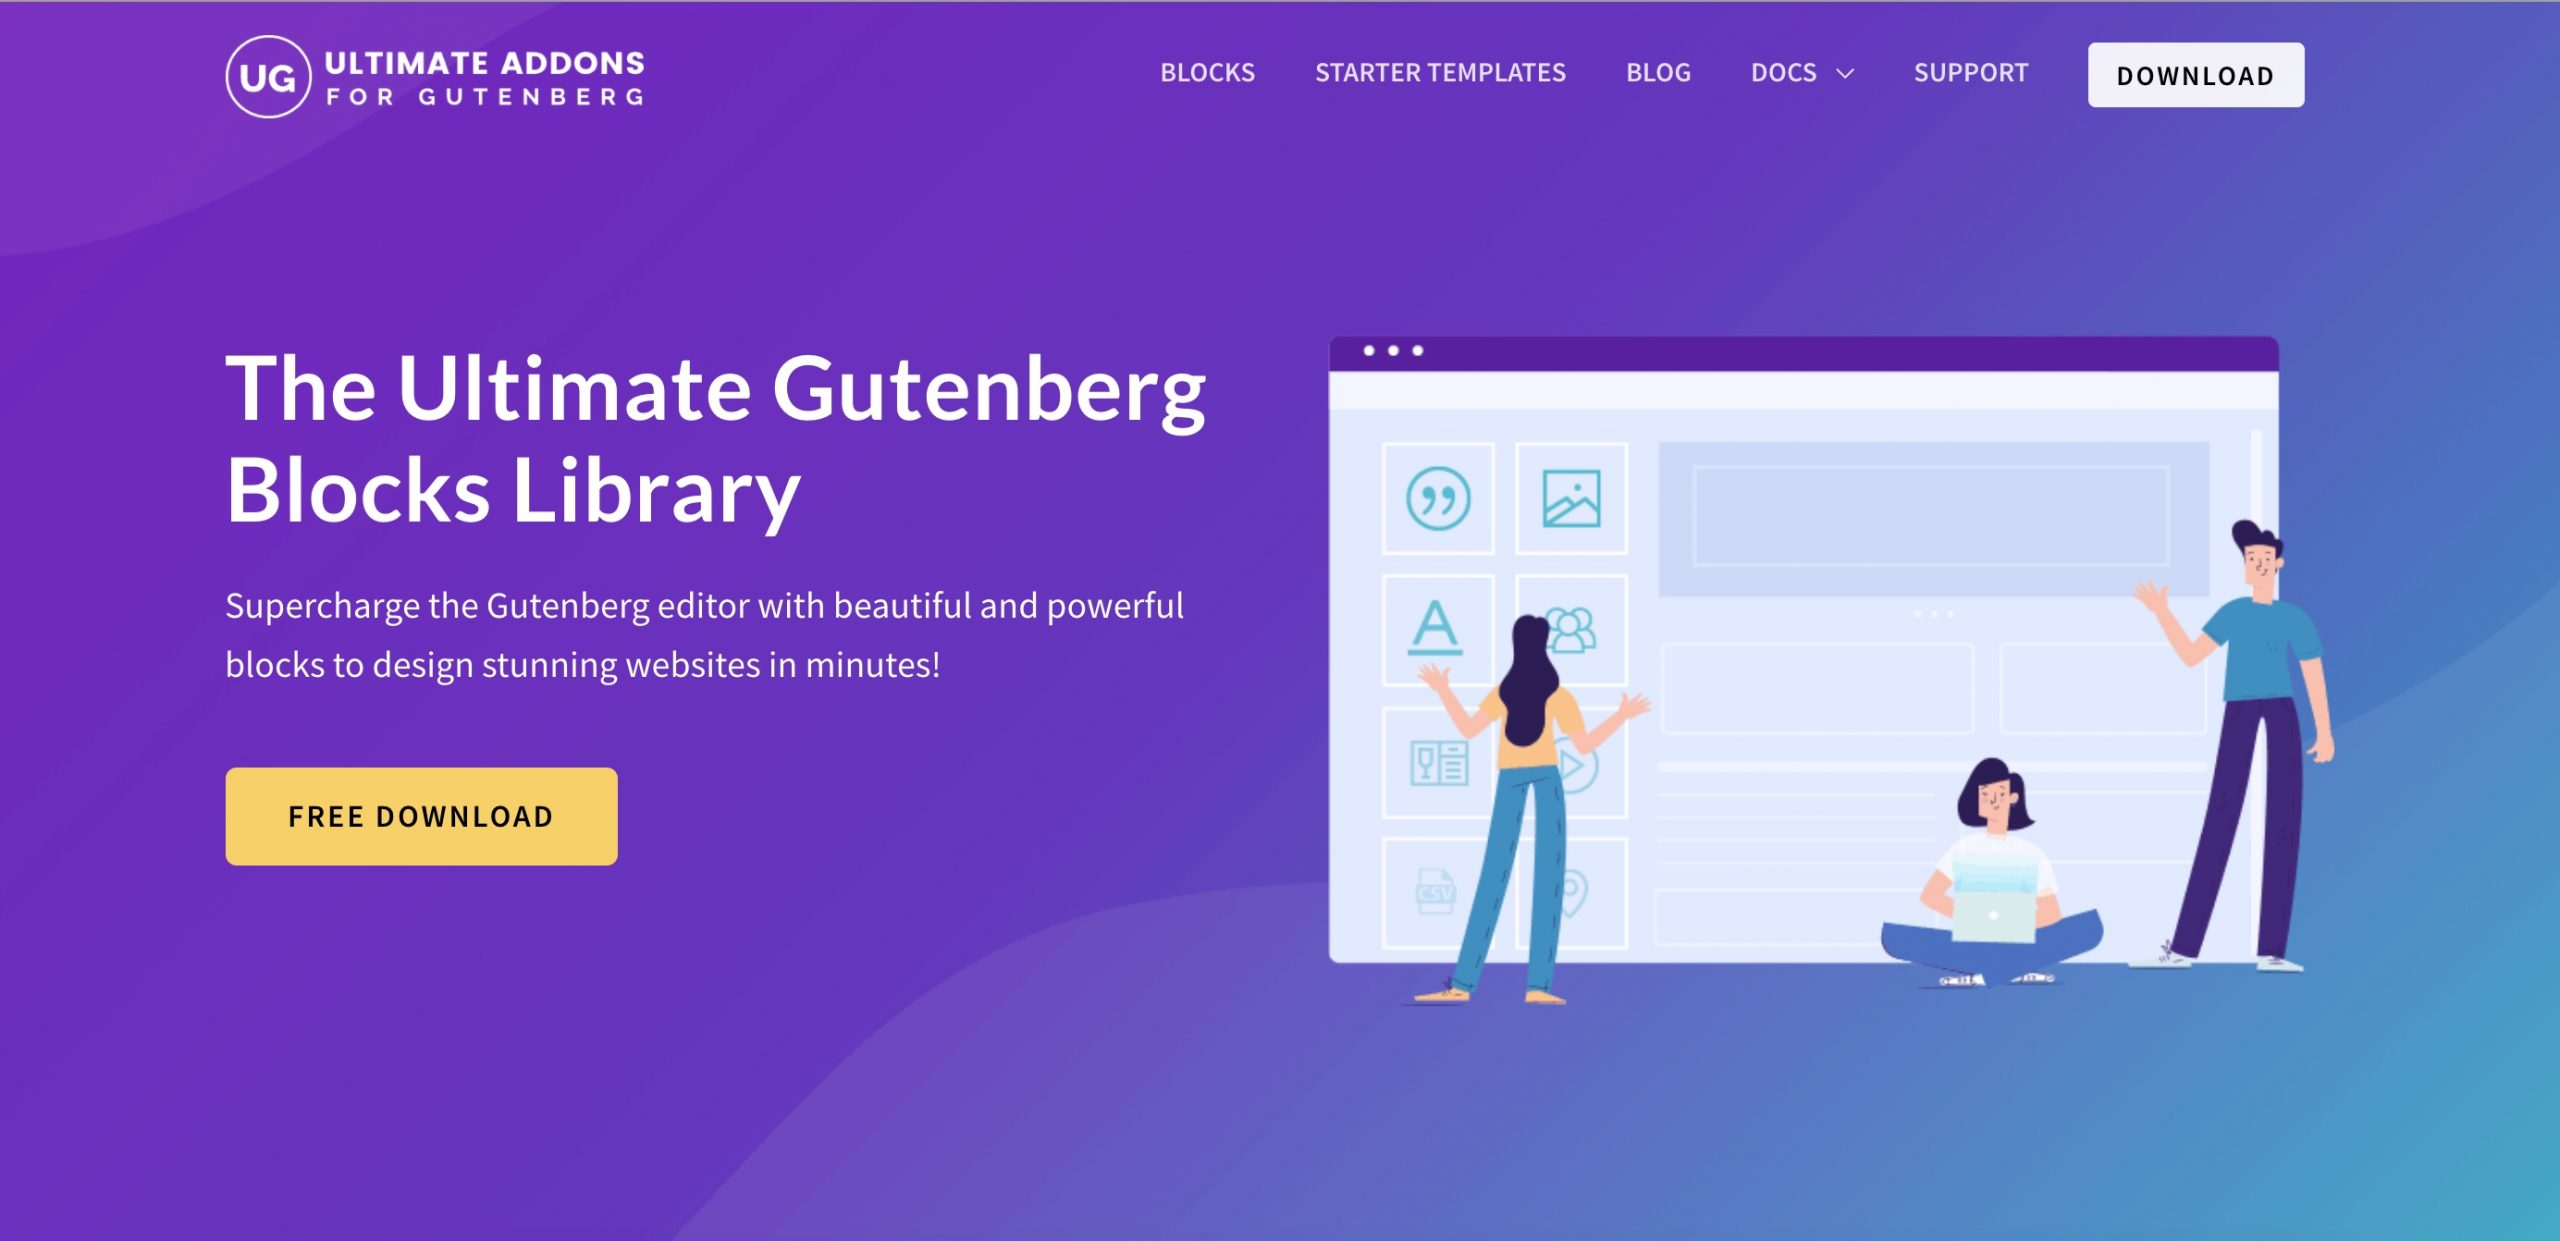 Ultimate Addons for Gutenberg editor